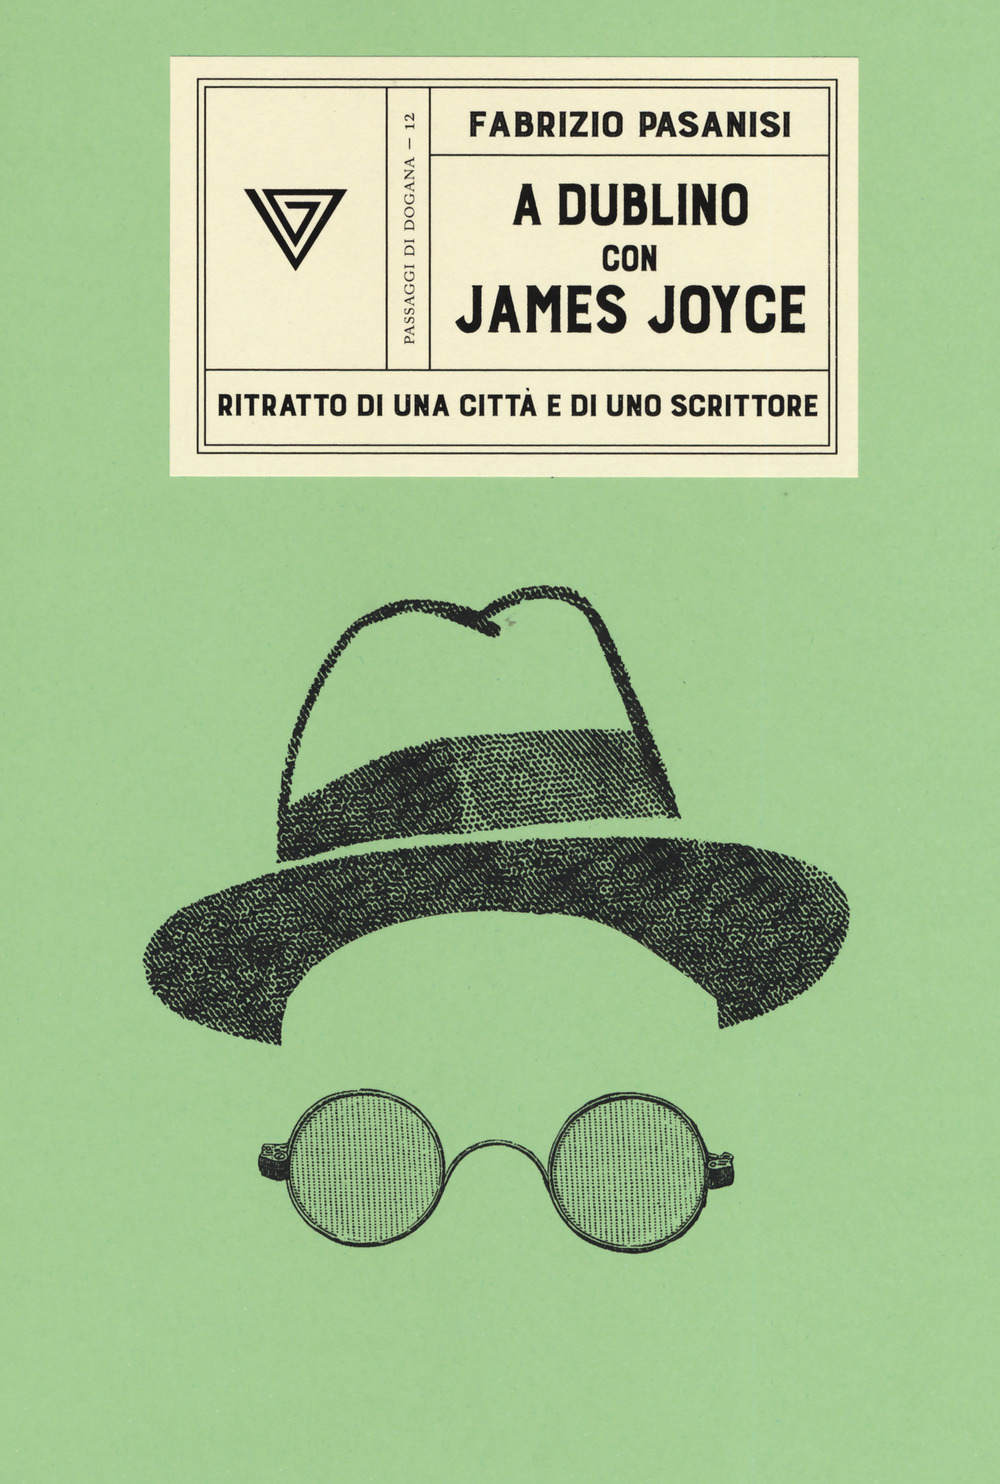 A Dublino con James Joyce